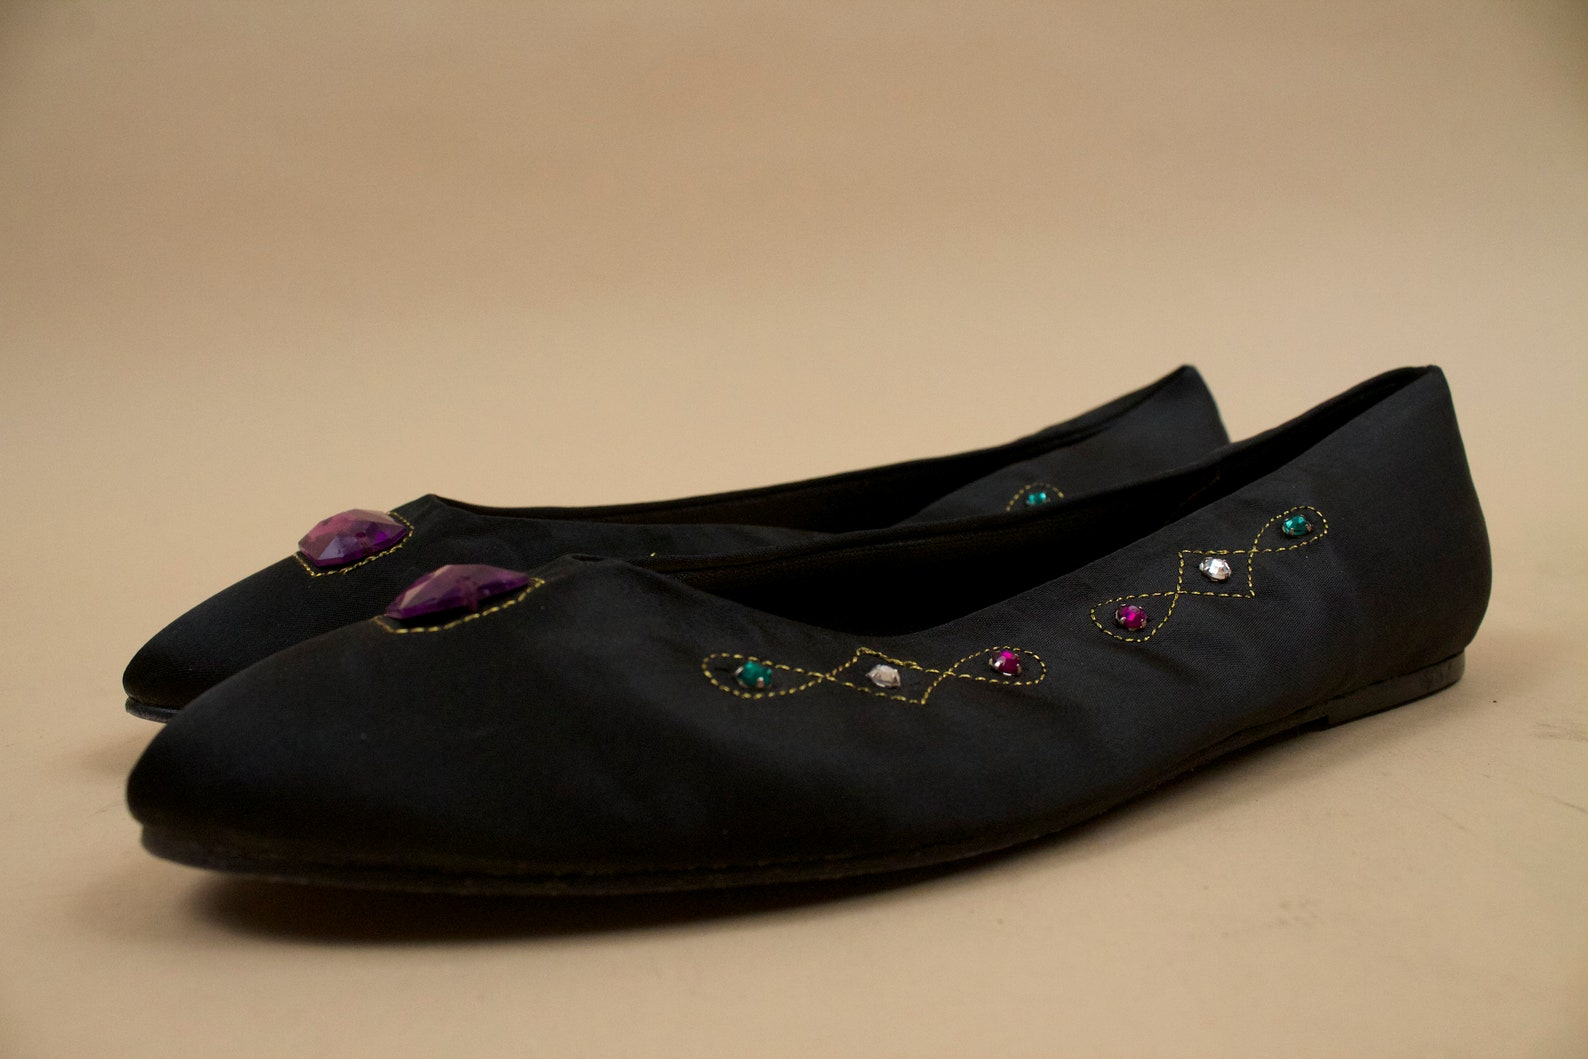 80s vtg jewel toe embroidered black satin ballet slipper flats / mootsie tootsie new wave casual slip on gem tone shoe 8.5 8 eu